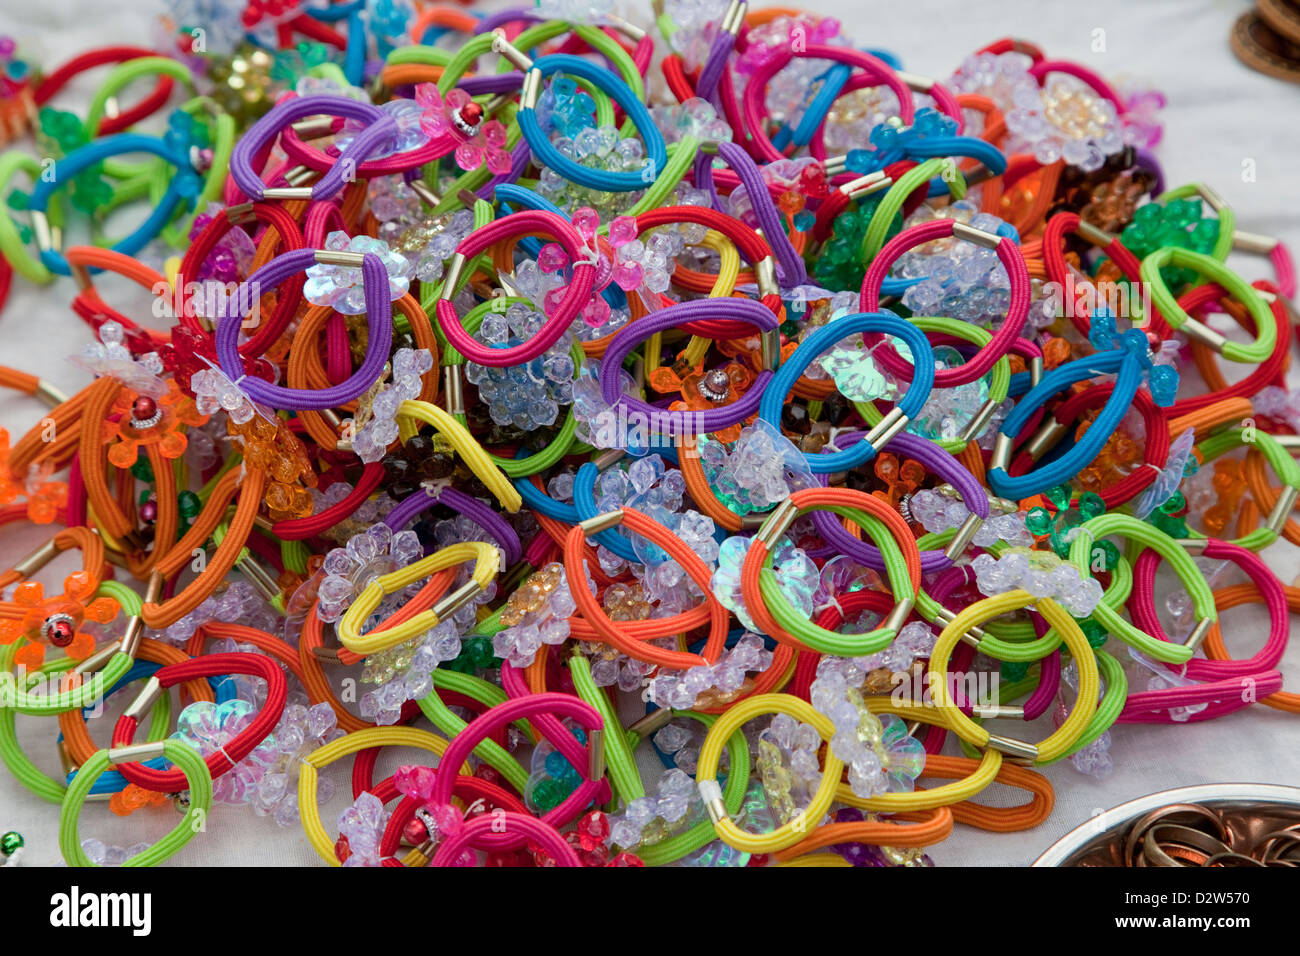 India, Rishikesh. Colorful Hair Ties, Elastic Hair Bands, Pony Tail Holders. - Stock Image